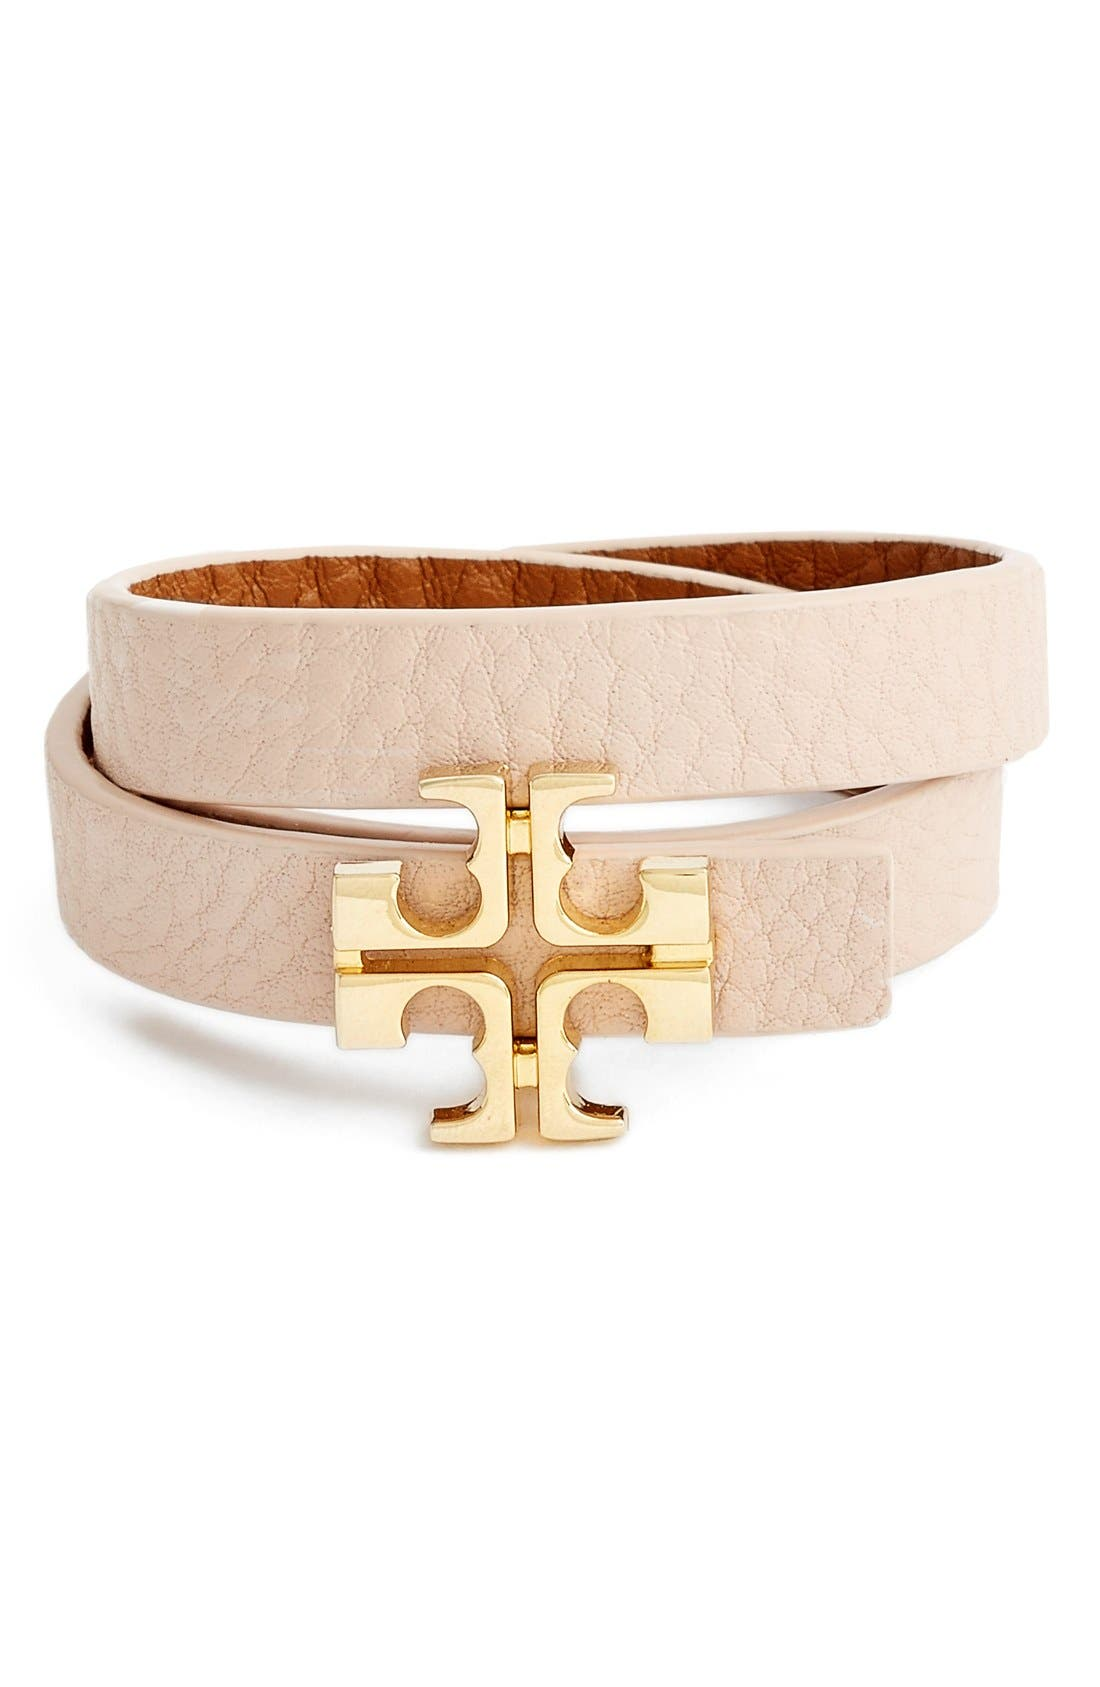 Main Image - Tory Burch 'Split T' Reversible Leather Wrap Bracelet